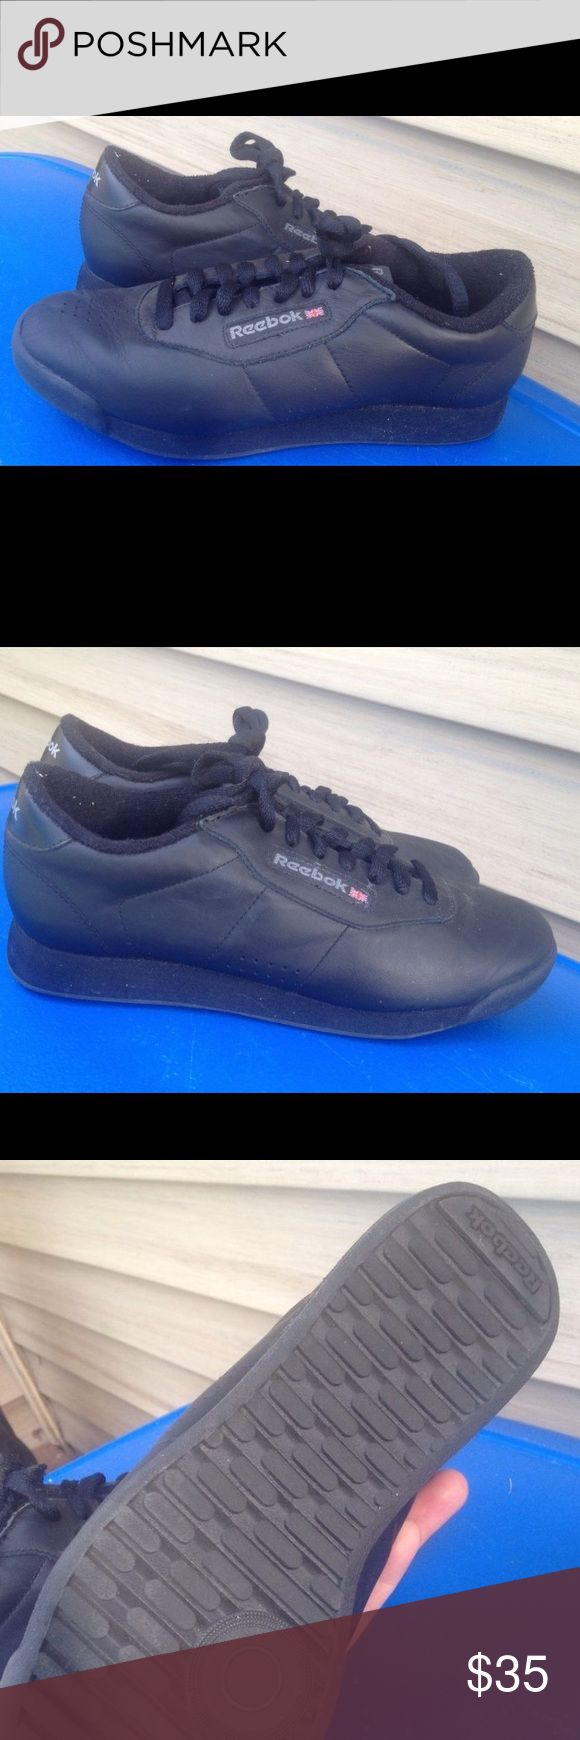 Women's Reebok Classic All Black  Sneakers 8.5M Women's Reebok Classic All Black Leather Fashion Sneakers Size 8.5M Excellent Condition Reebok Shoes Athletic Shoes